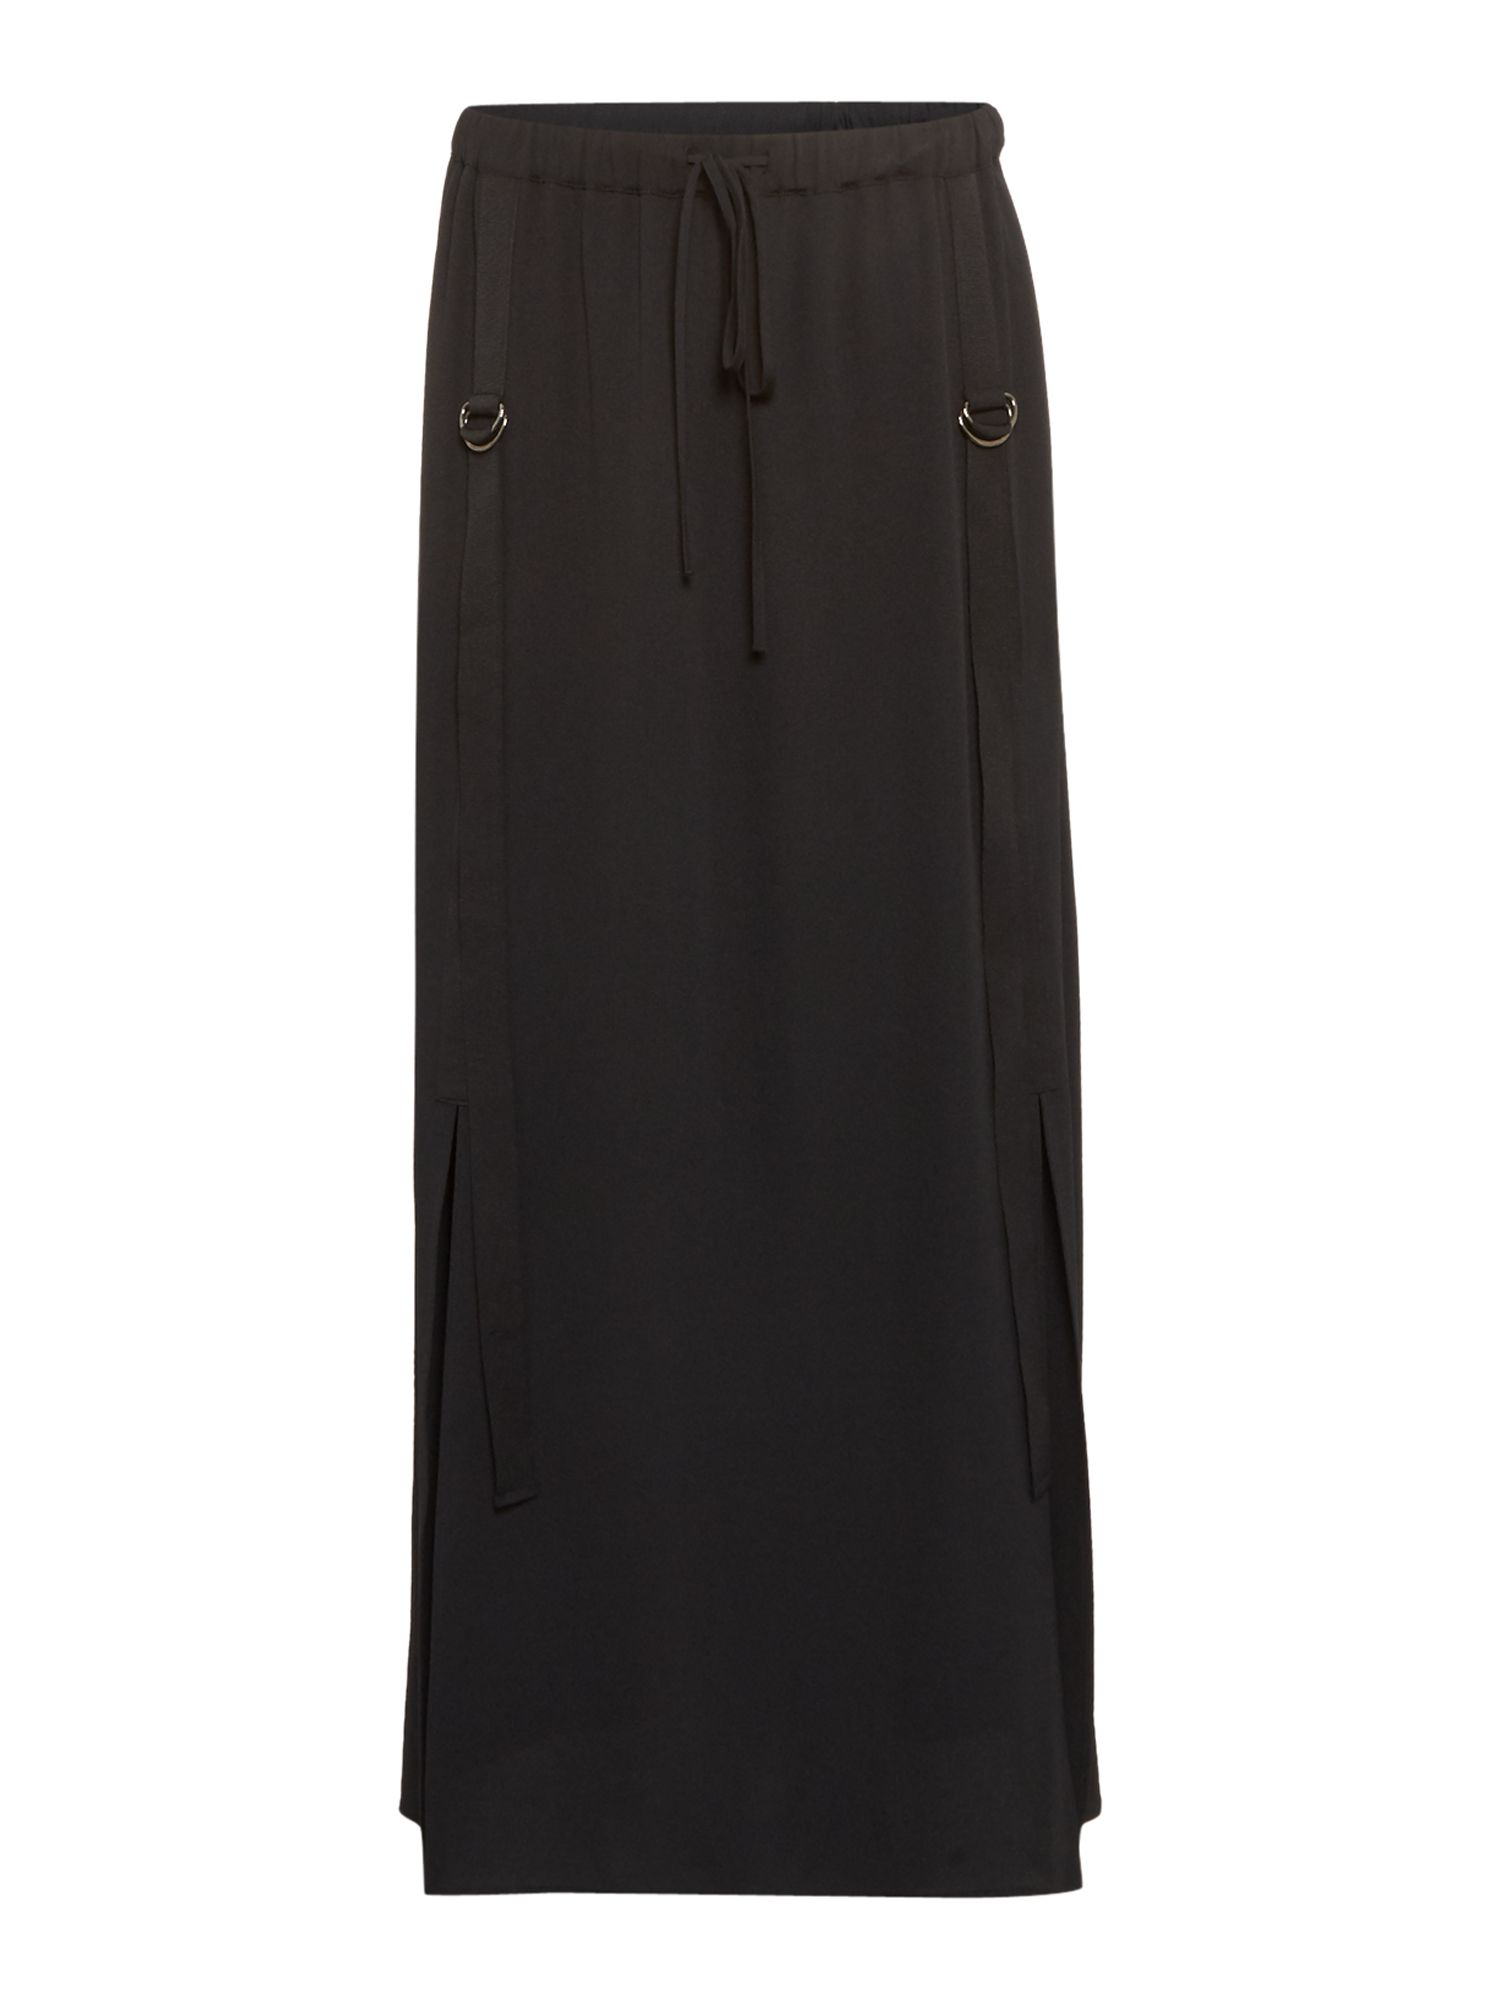 Label Lab D-Ring Detail Maxi Skirt, Black